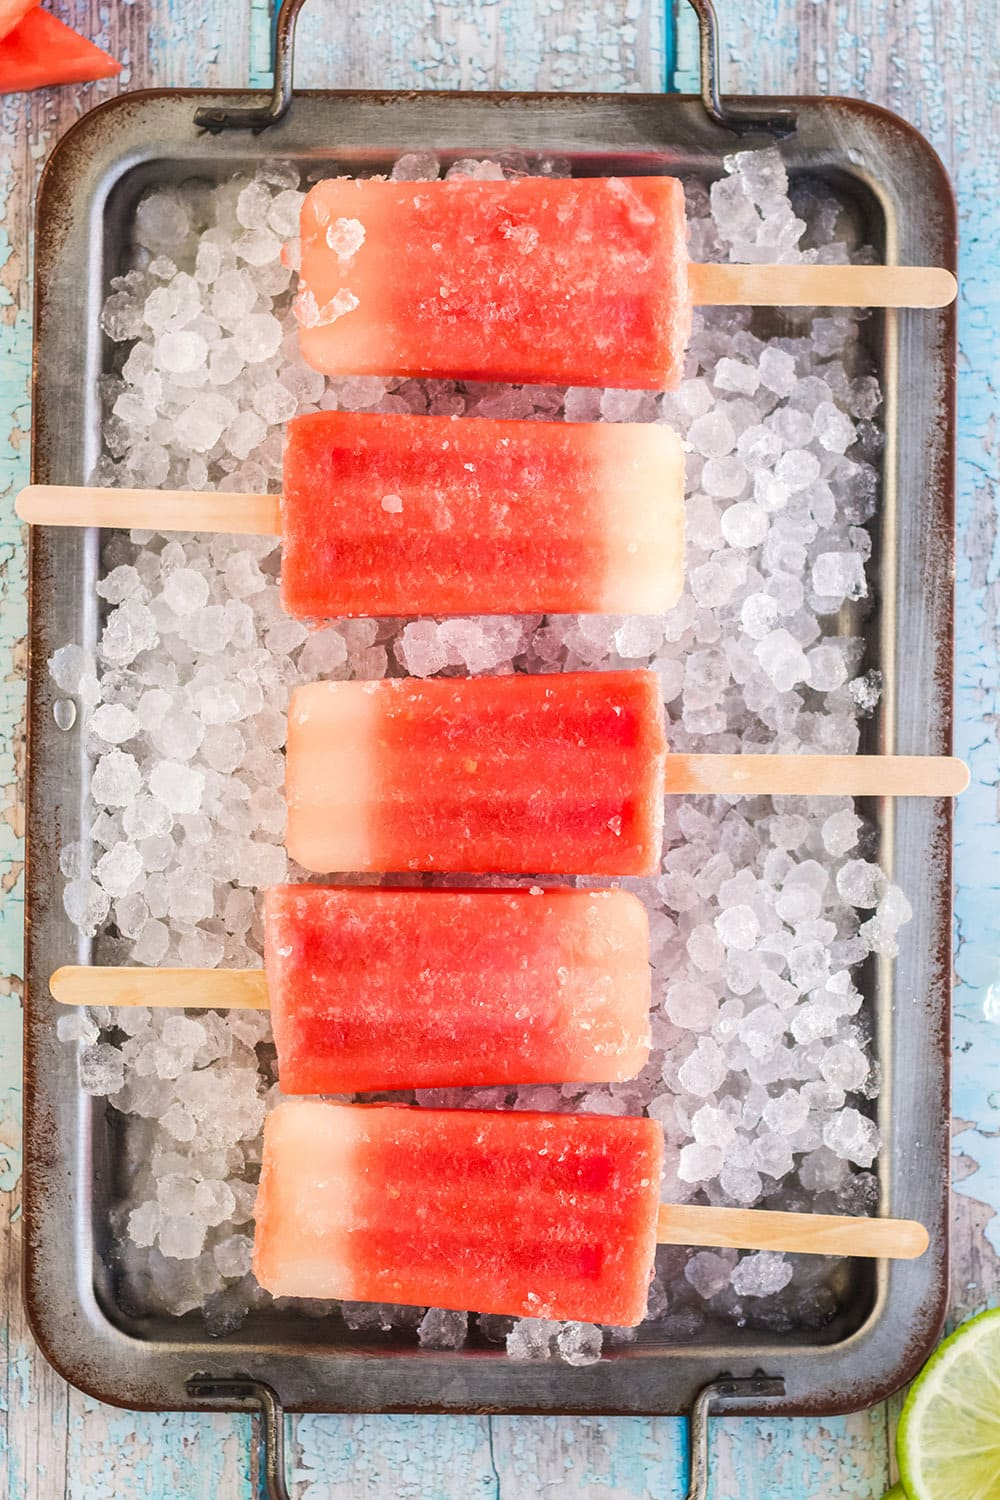 Watermelon pops lined up in a tray with ice.